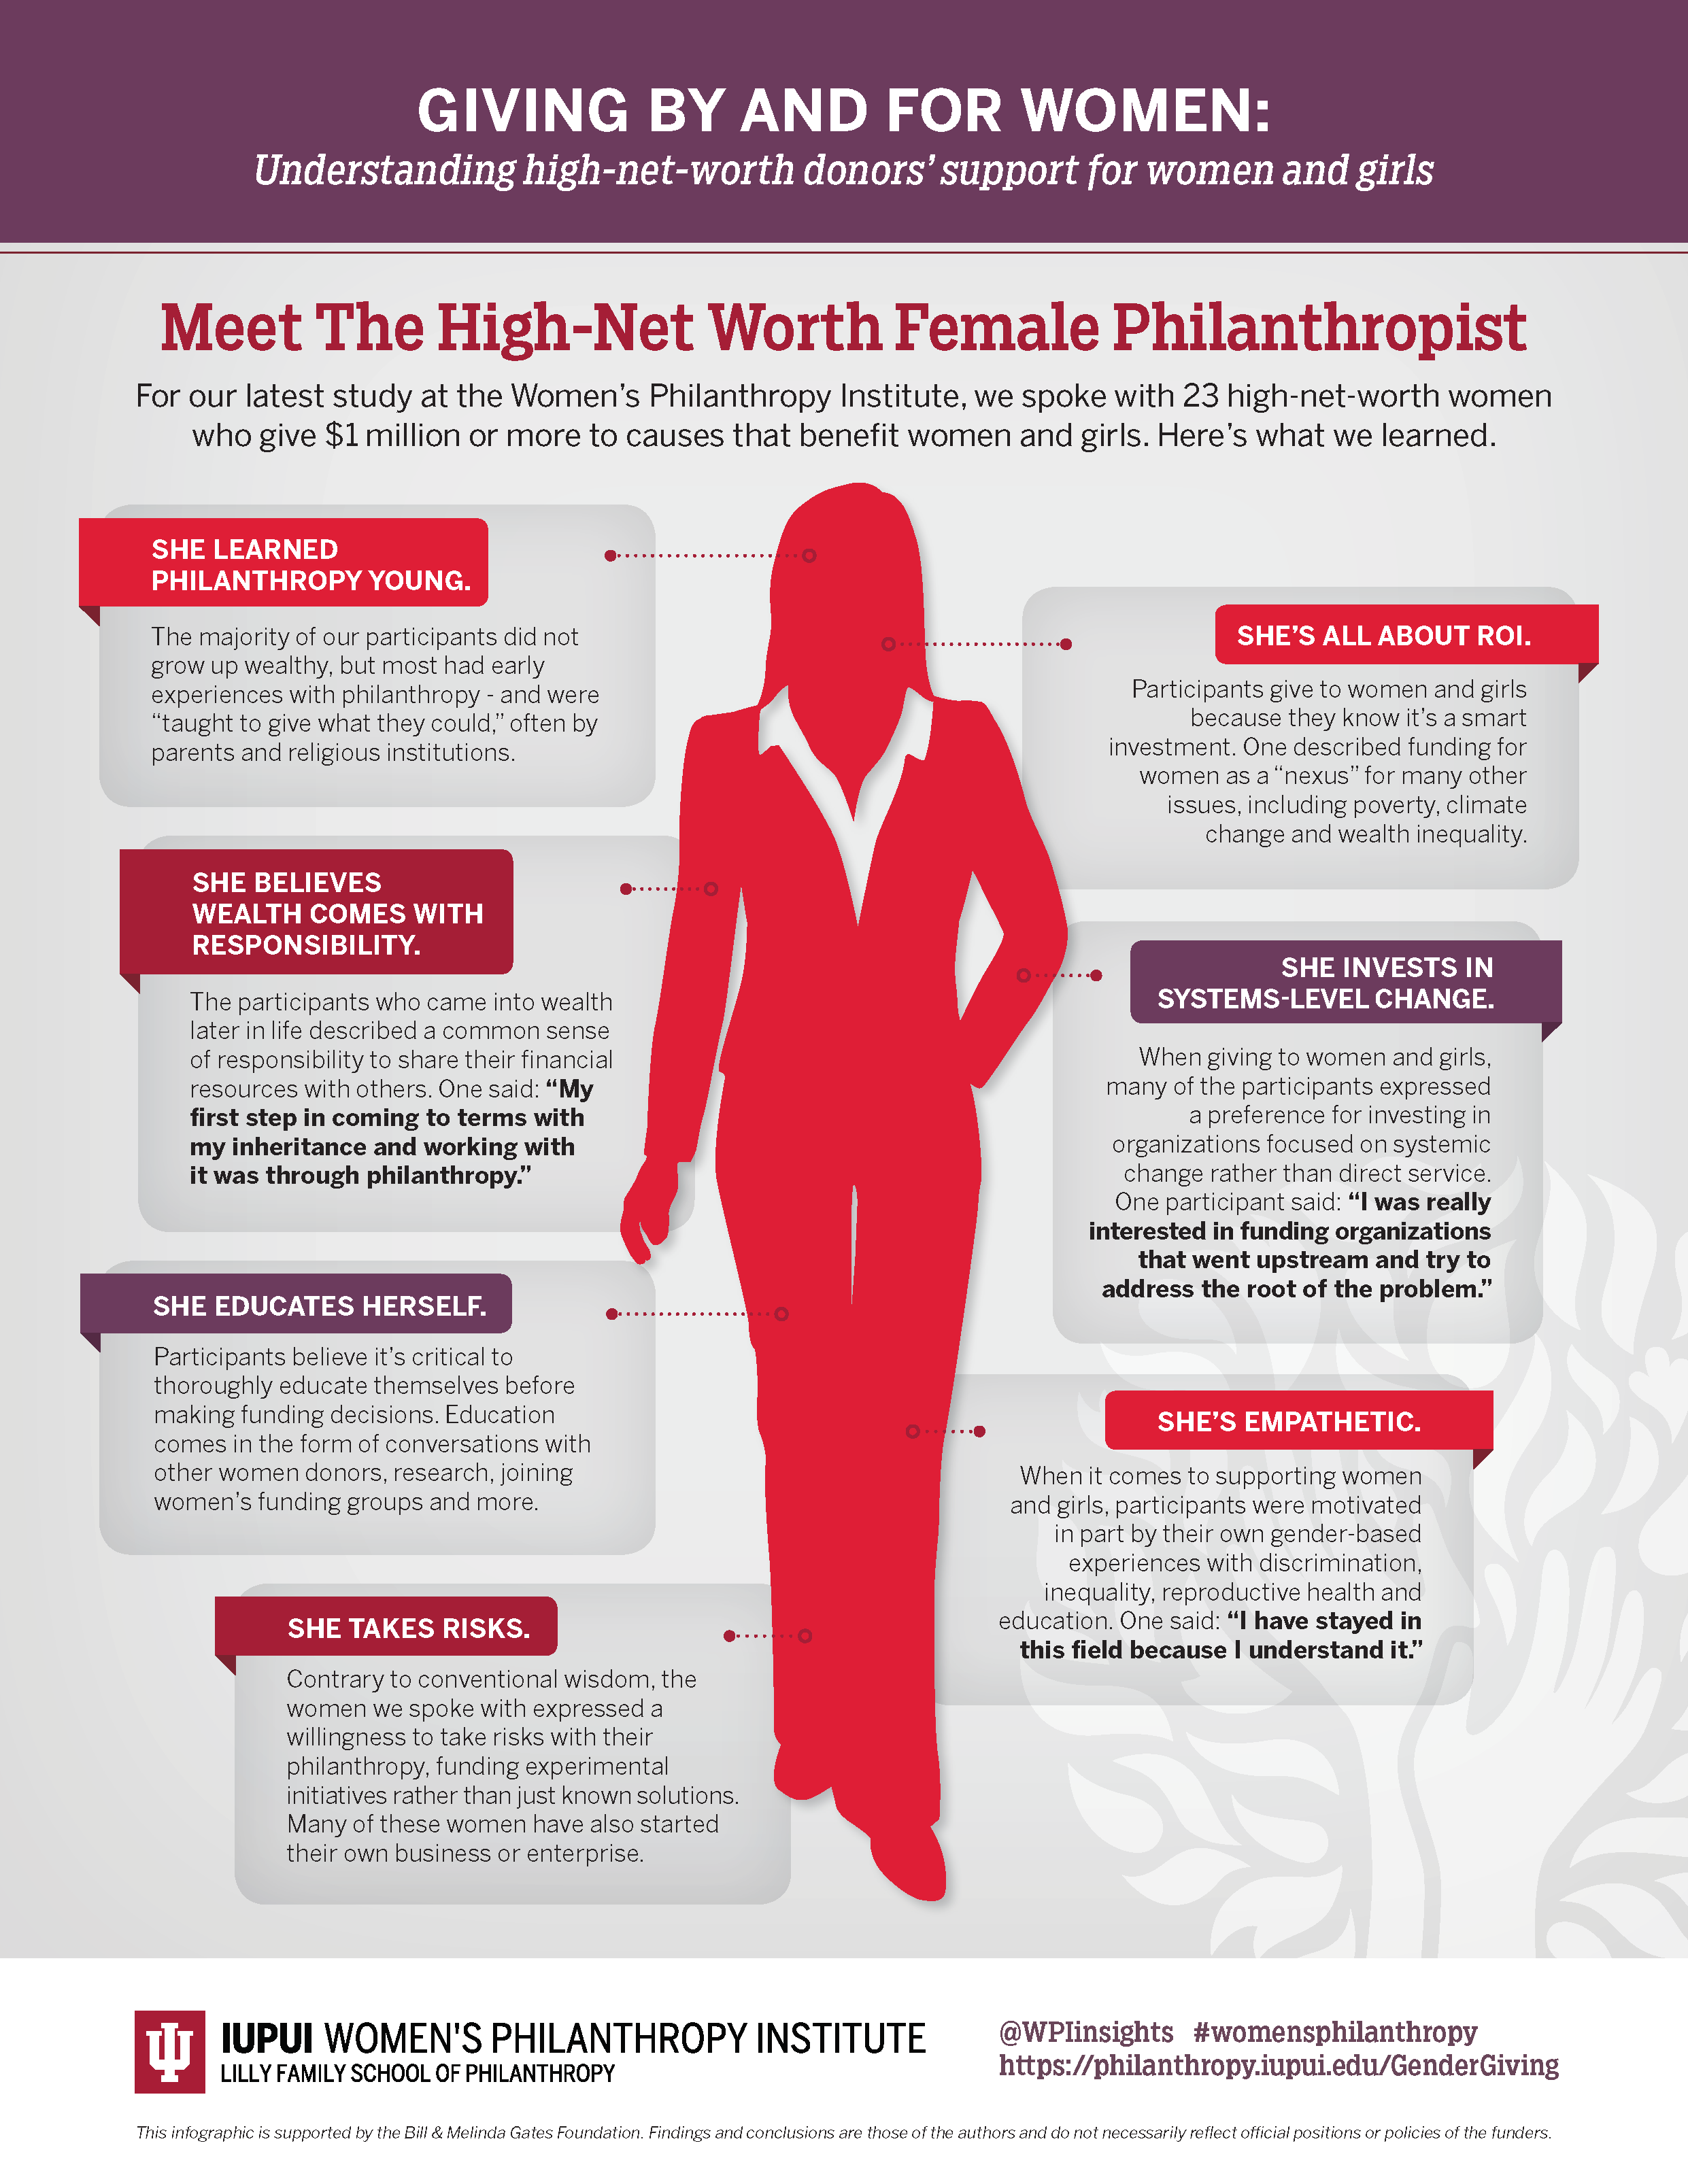 Source:  Giving By And For Women Infographic